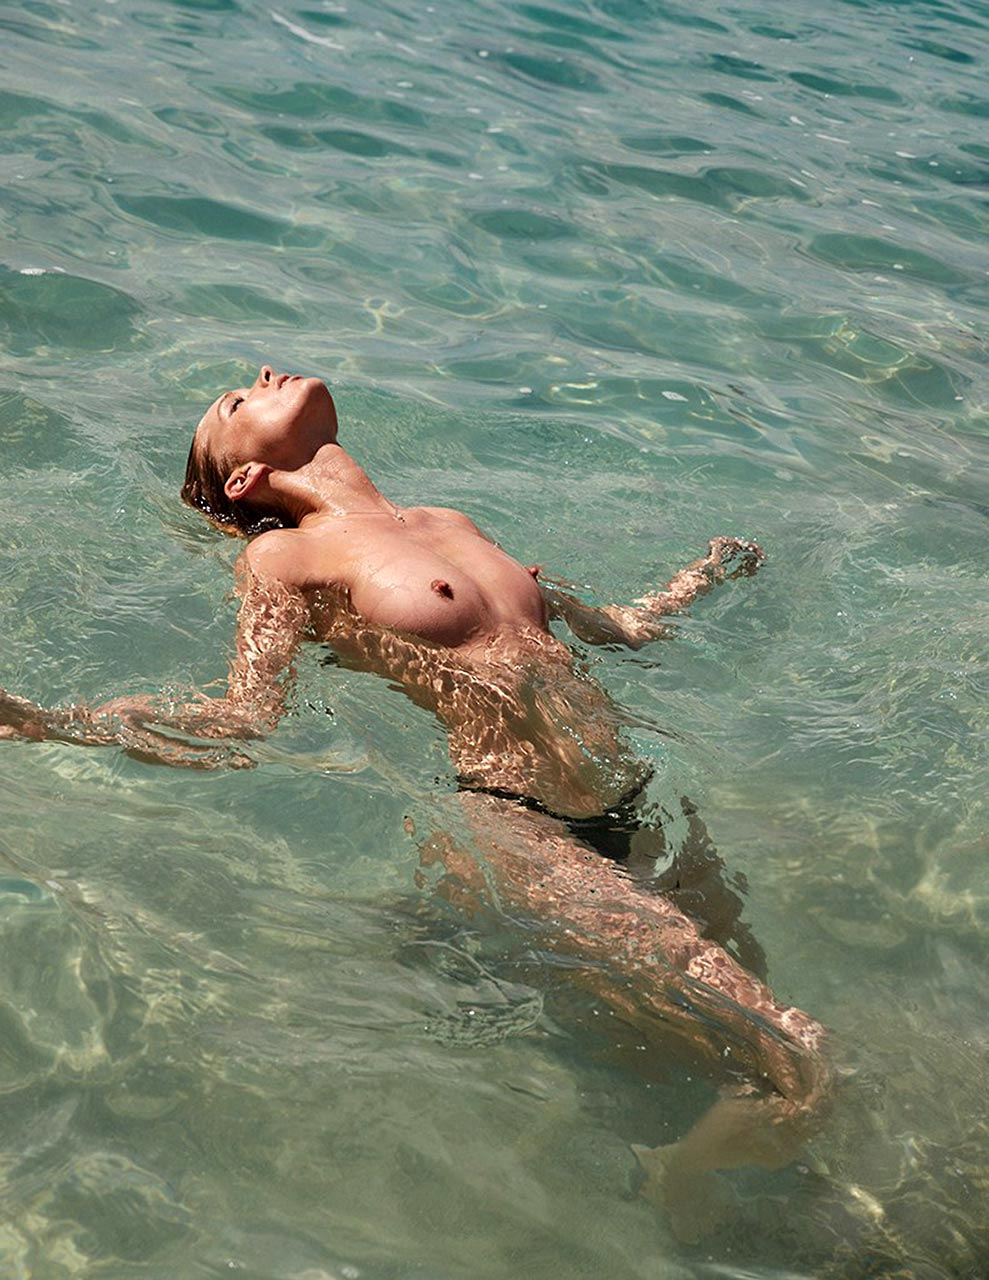 For that Nude swimmer lady hot apologise, but